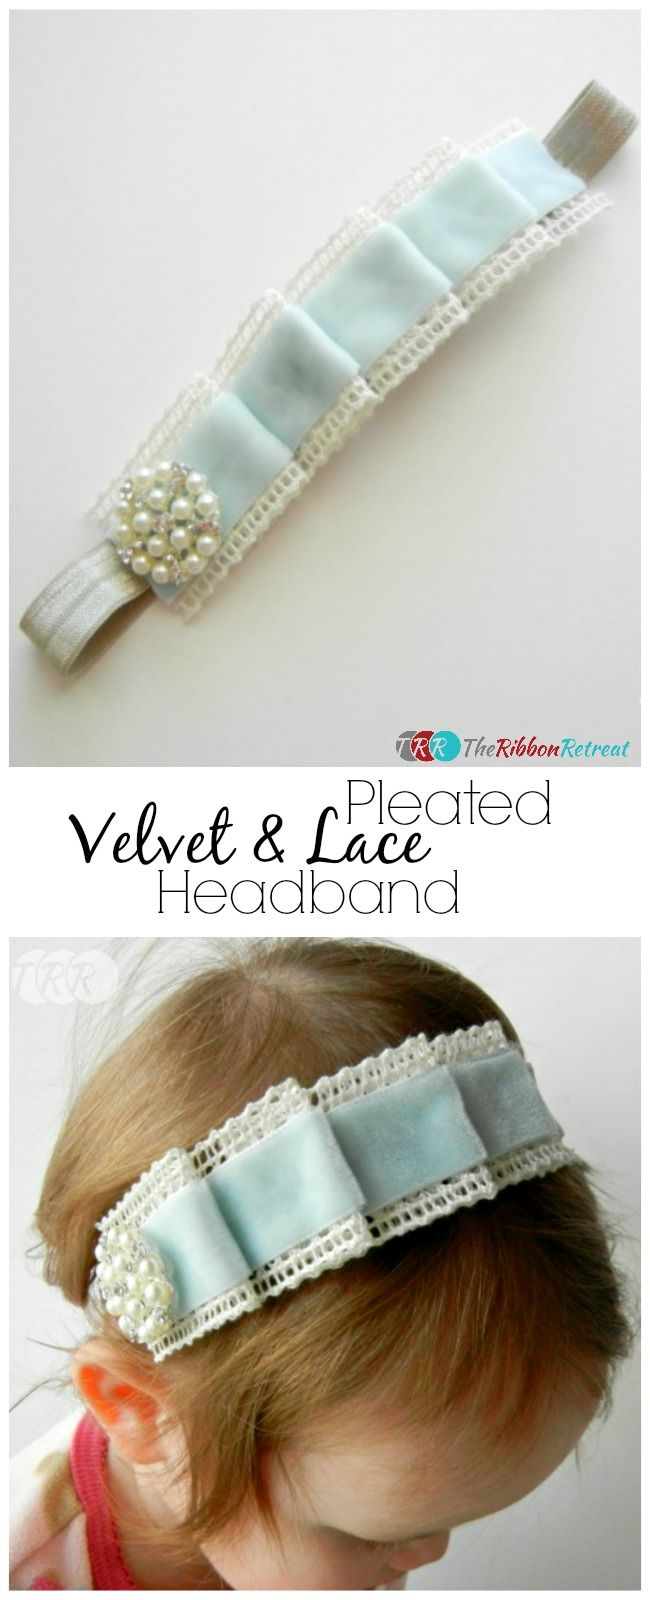 Pleated Velvet and Lace Headband Tutorial - The Ribbon Retreat Blog ...